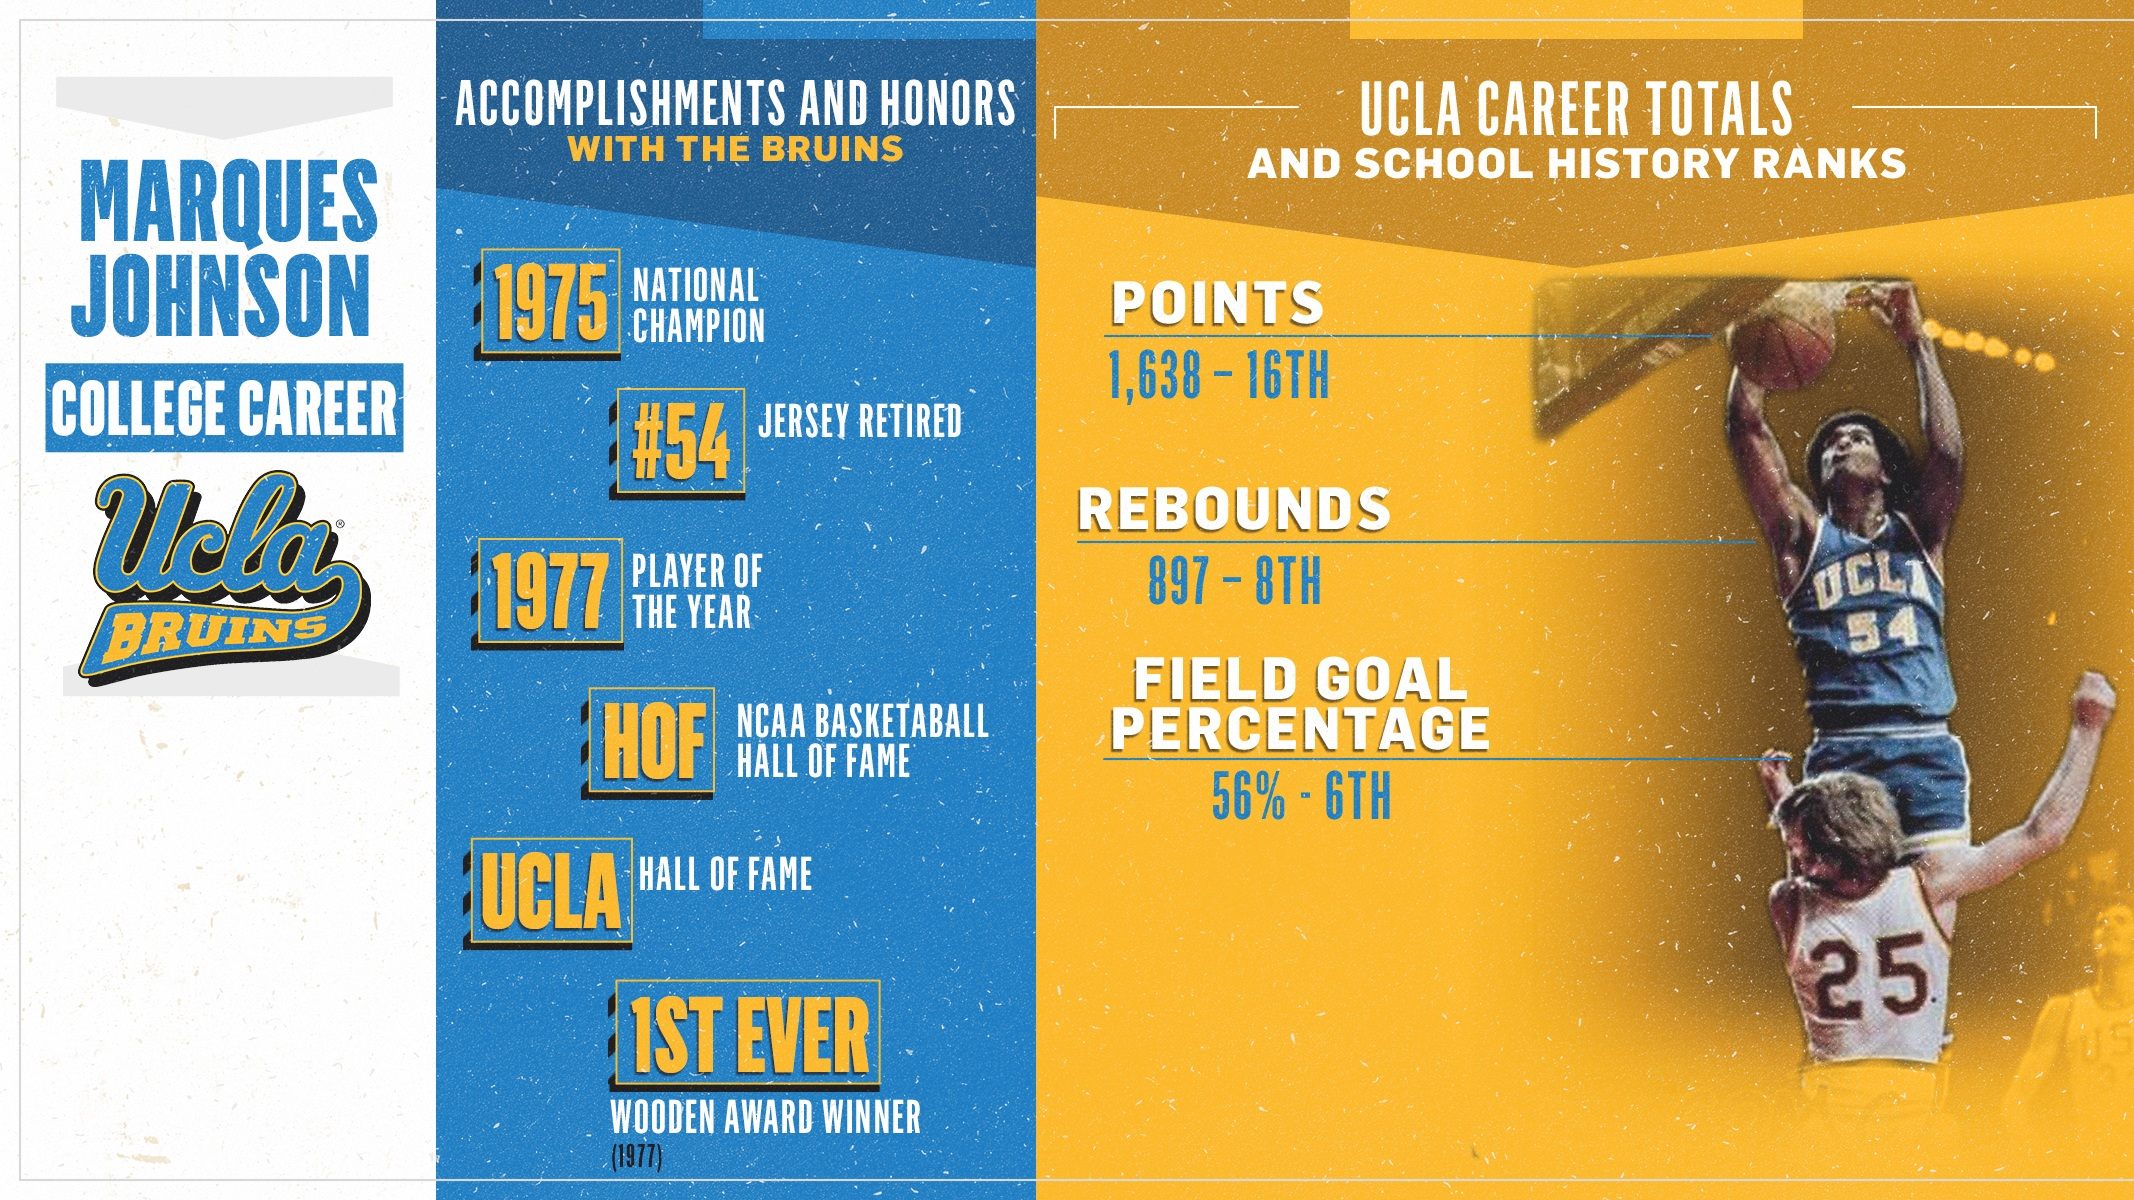 UCLA Career